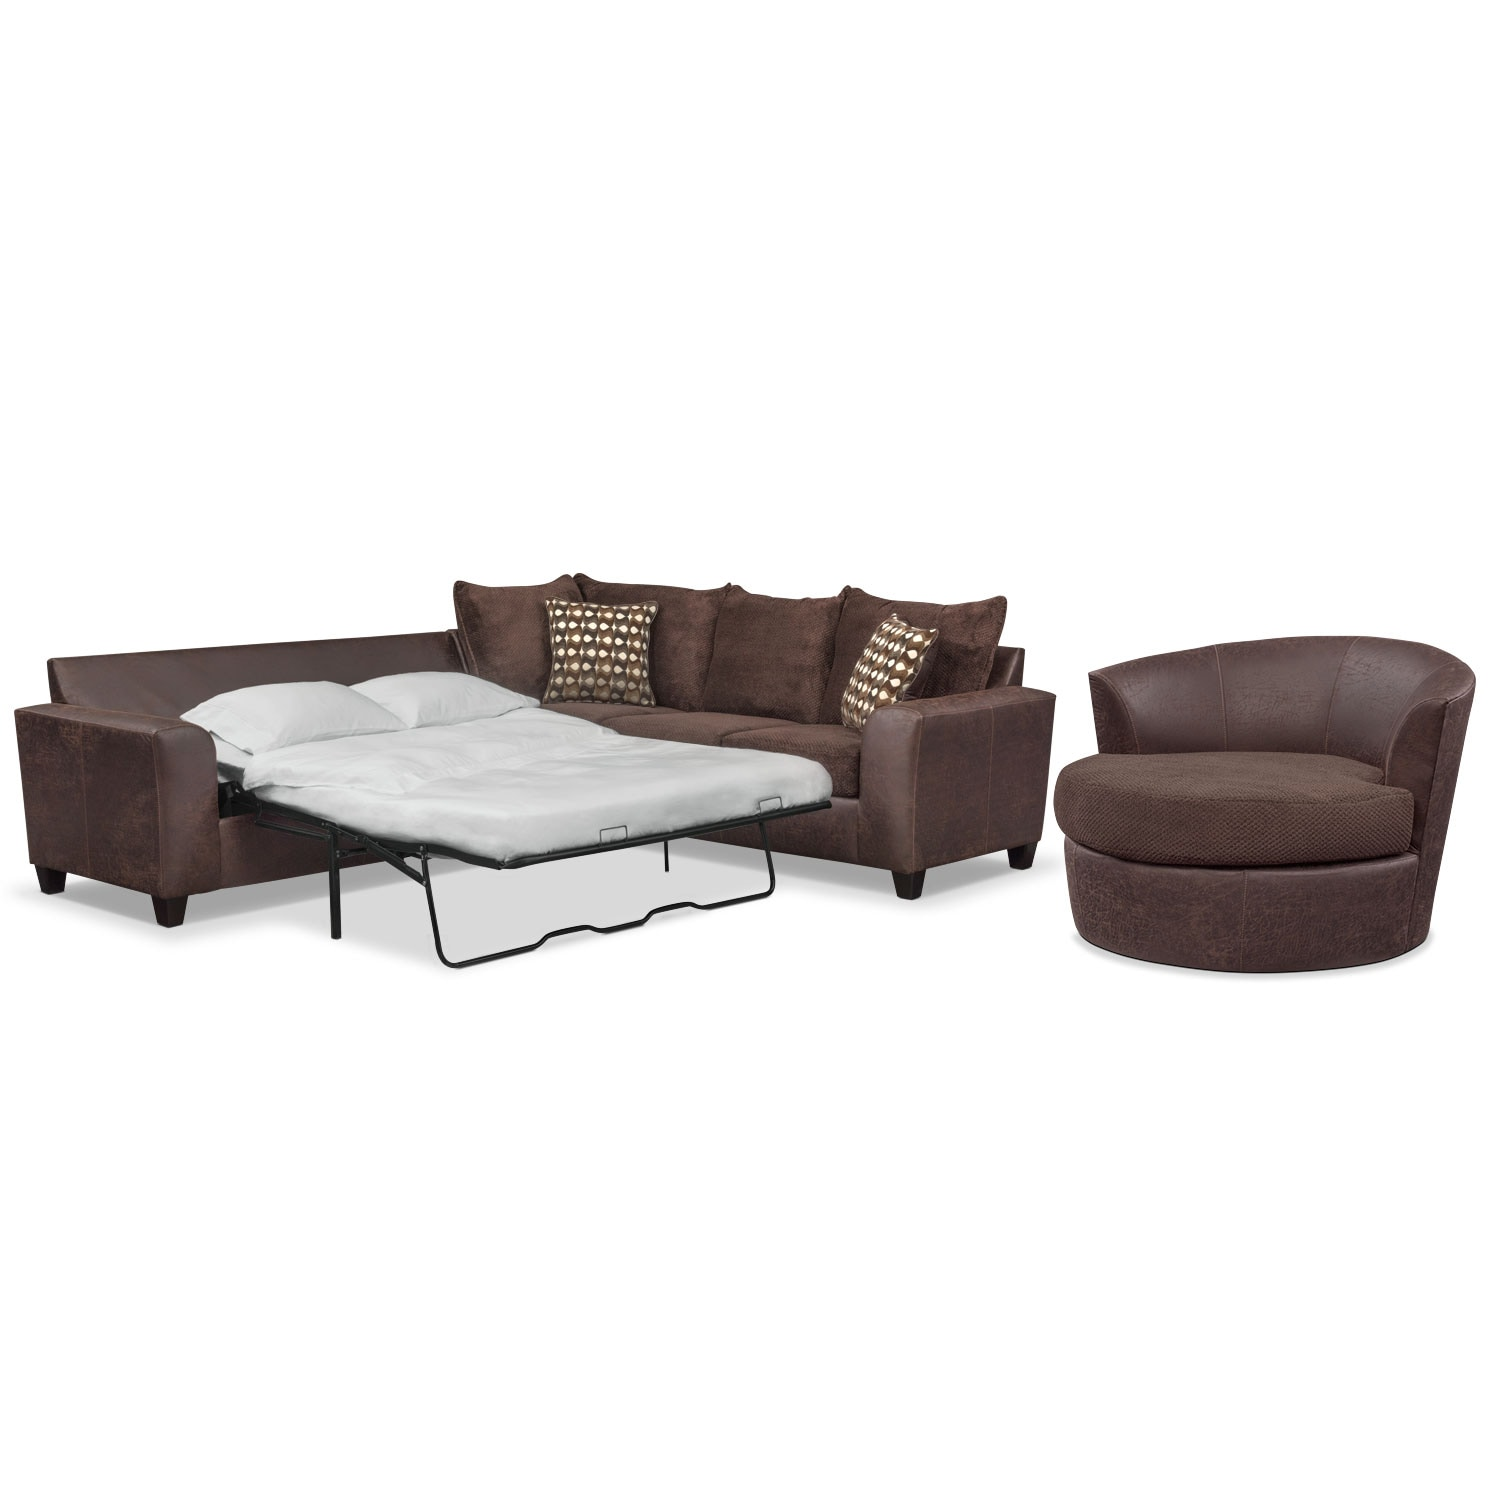 Living Room Furniture - Brando 2-Piece Innerspring Sleeper Sectional and Swivel Chair Set - Chocolate